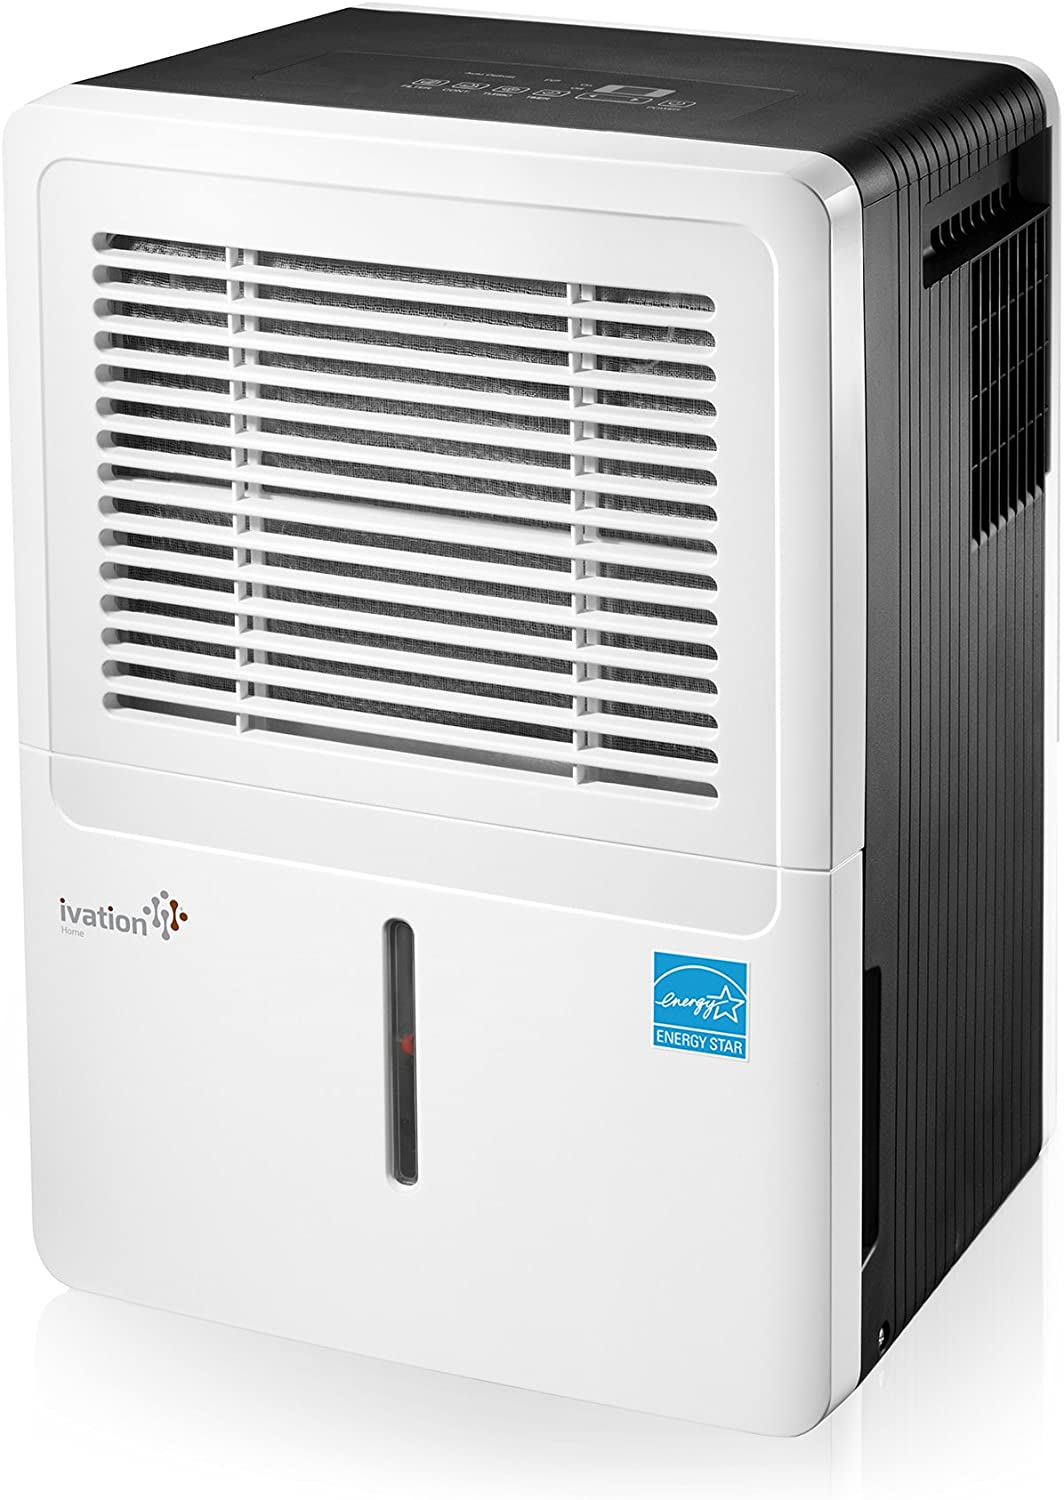 Ivation 30 Pint Energy Star Dehumidifier – For Spaces Up To 2,000 Sq Ft – Includes Programmable Humidistat, Hose Connector, Auto Shutoff Restart, Casters Washable Air Filter 30 Pint ,White